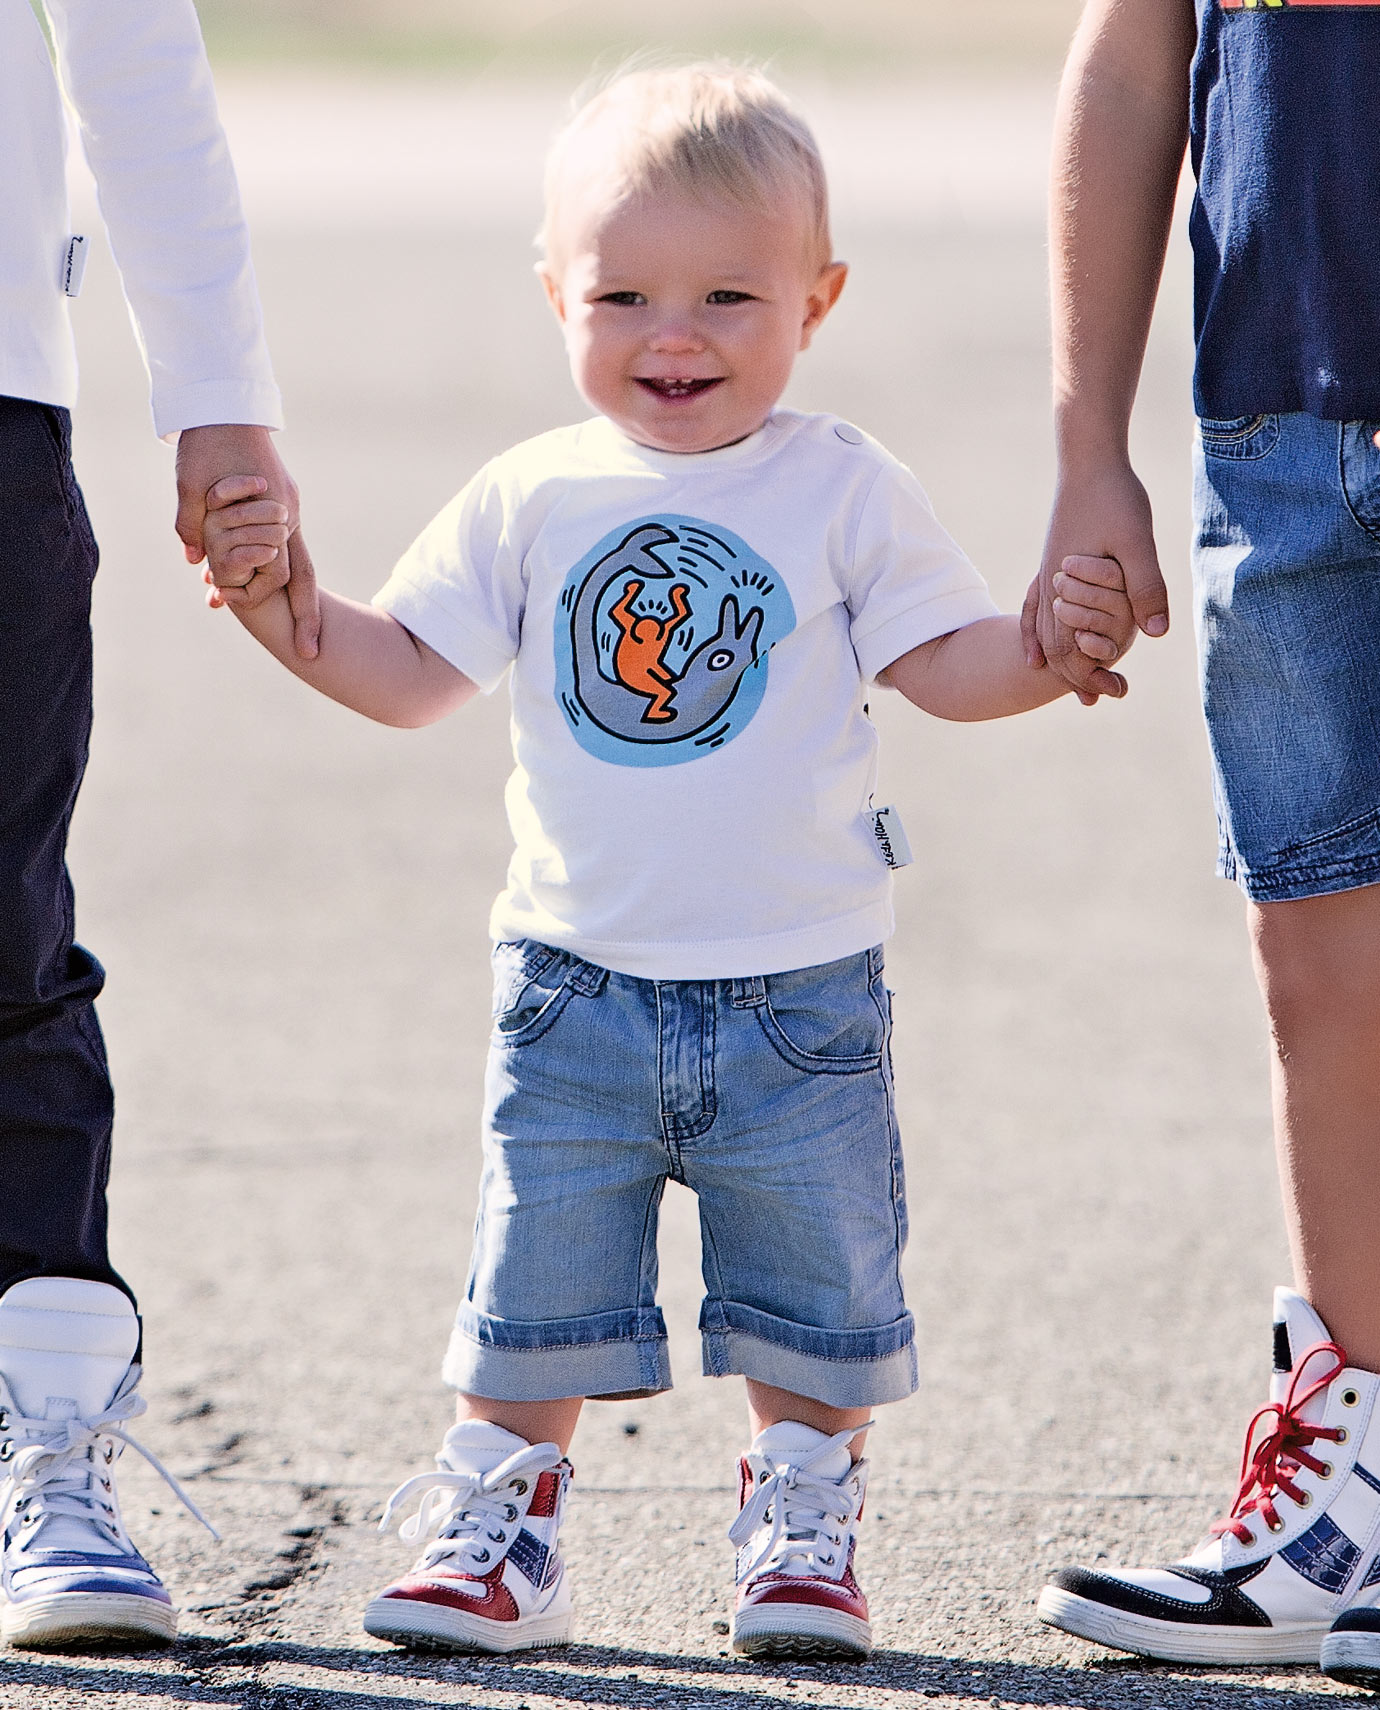 2013 Newest Spring Kids Clothes Set Baby Boys Clothes Suit Free Shipping baby cartoon white o-neck top pocket cool denim sets<br><br>Aliexpress